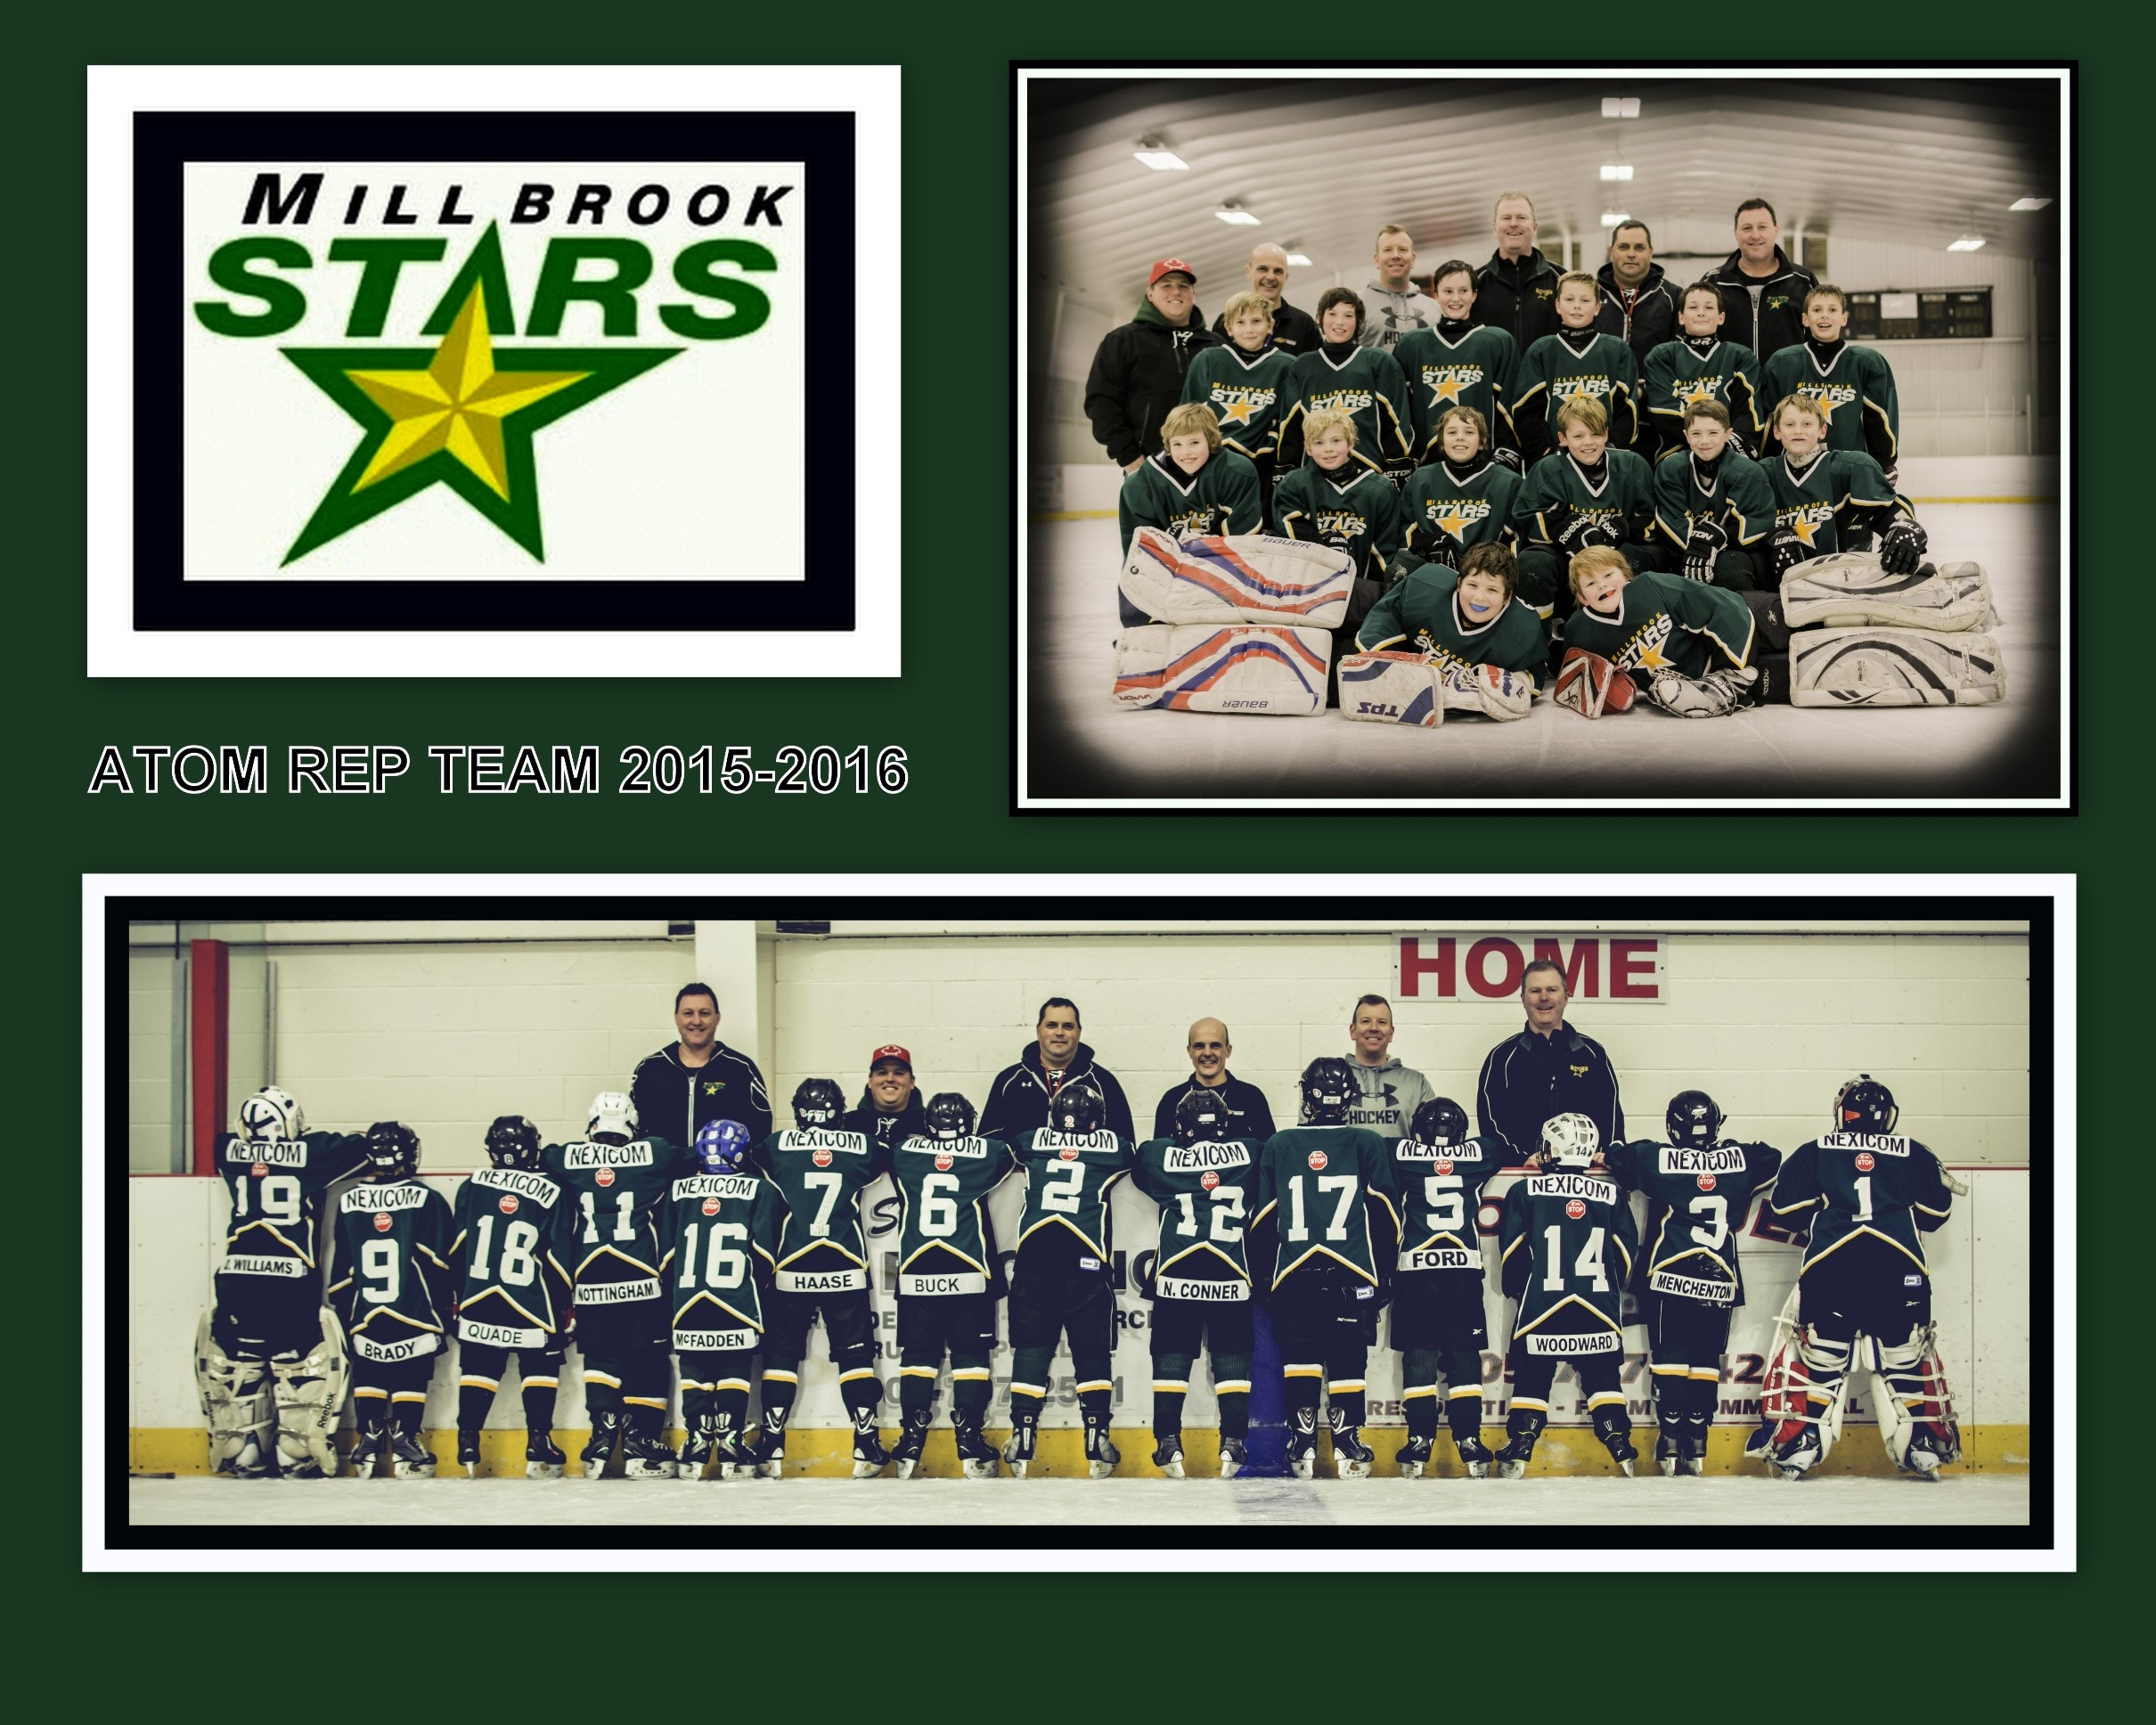 Millbrook &District Minor Hockey Association